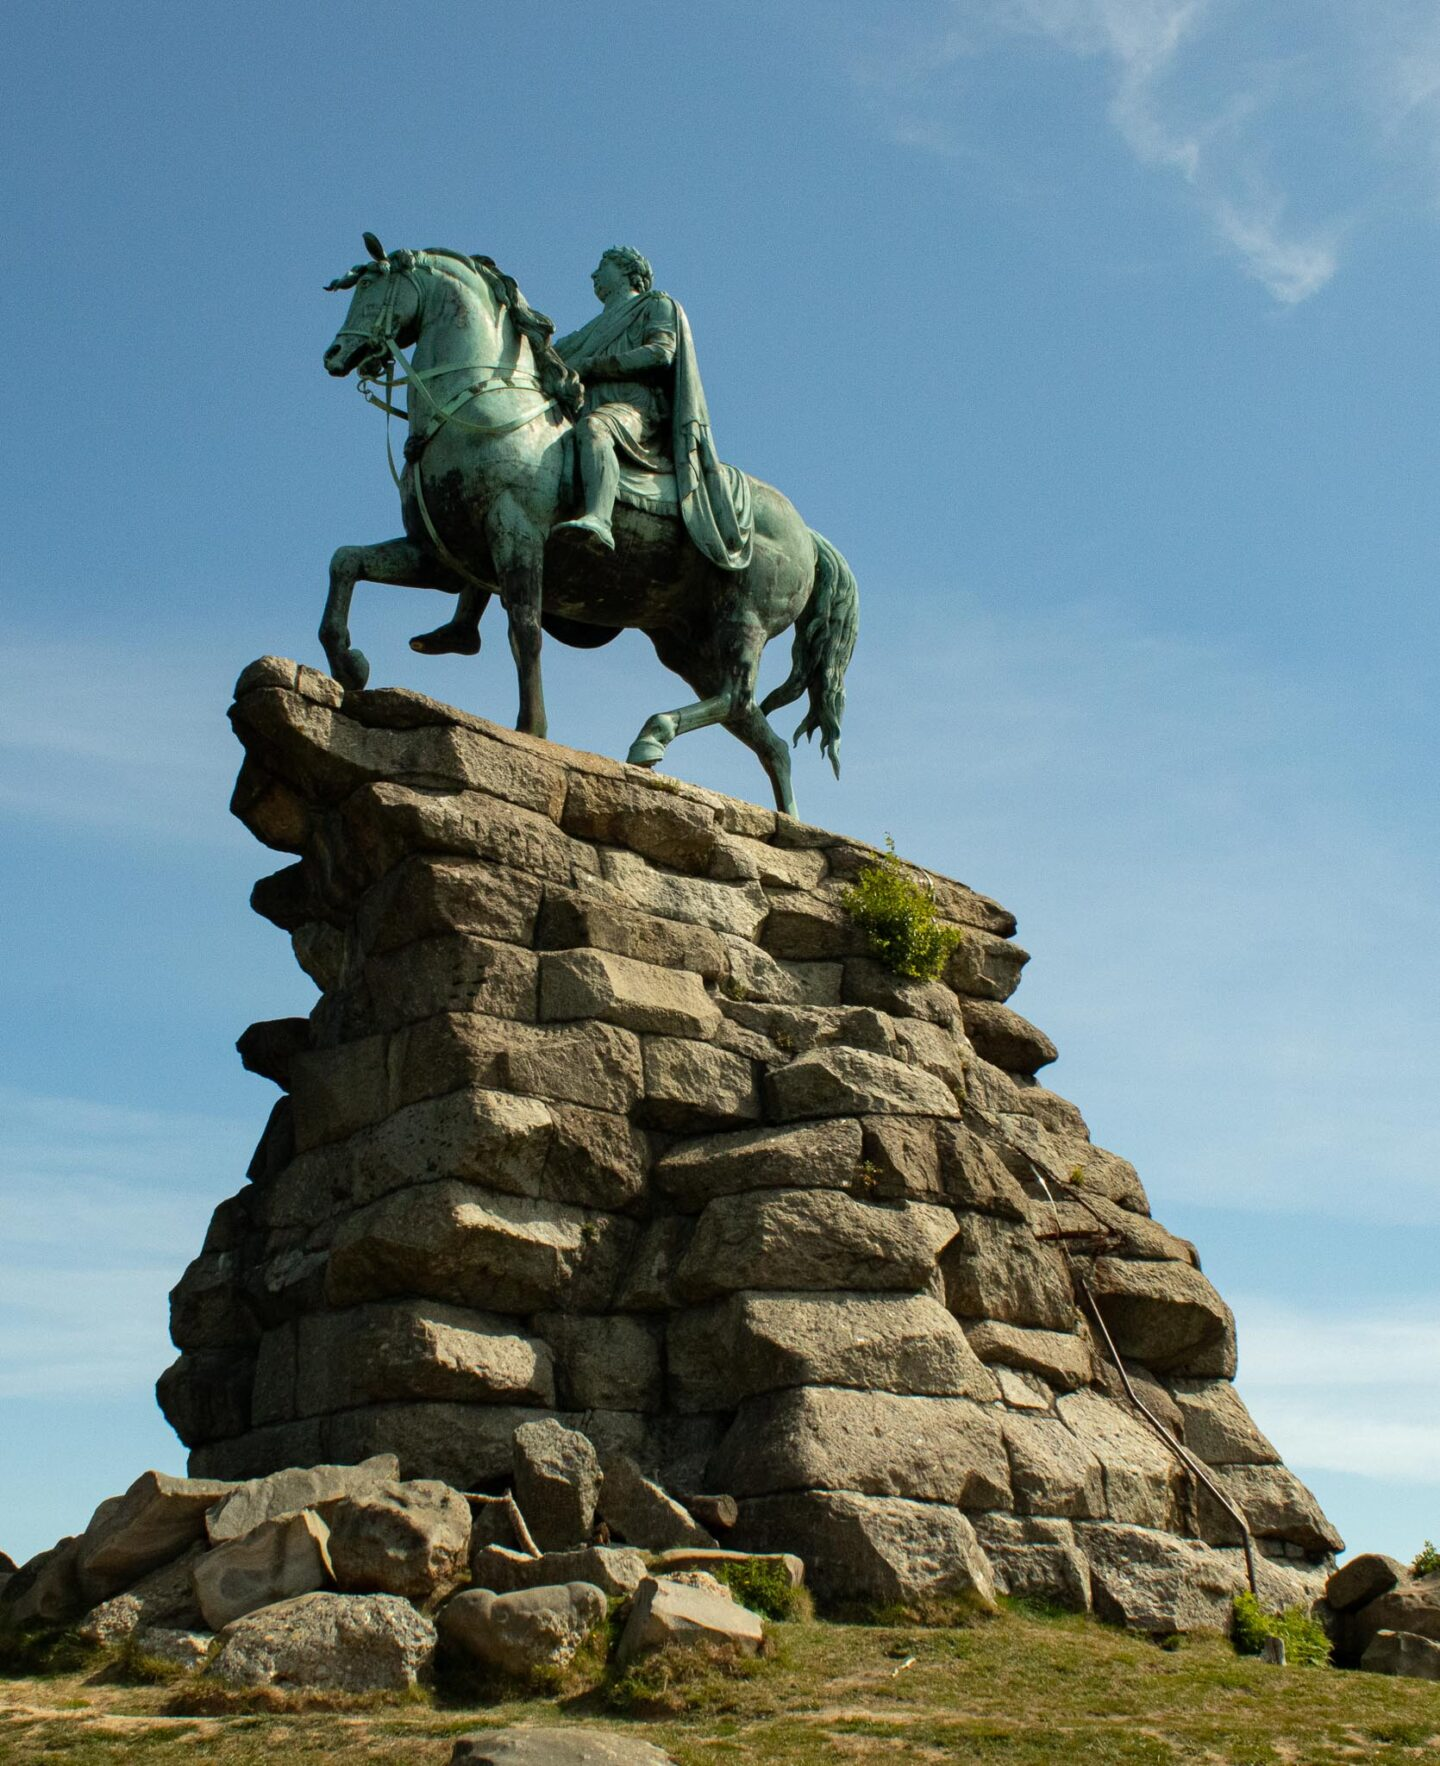 A closer view of the statue on Snow Hill.